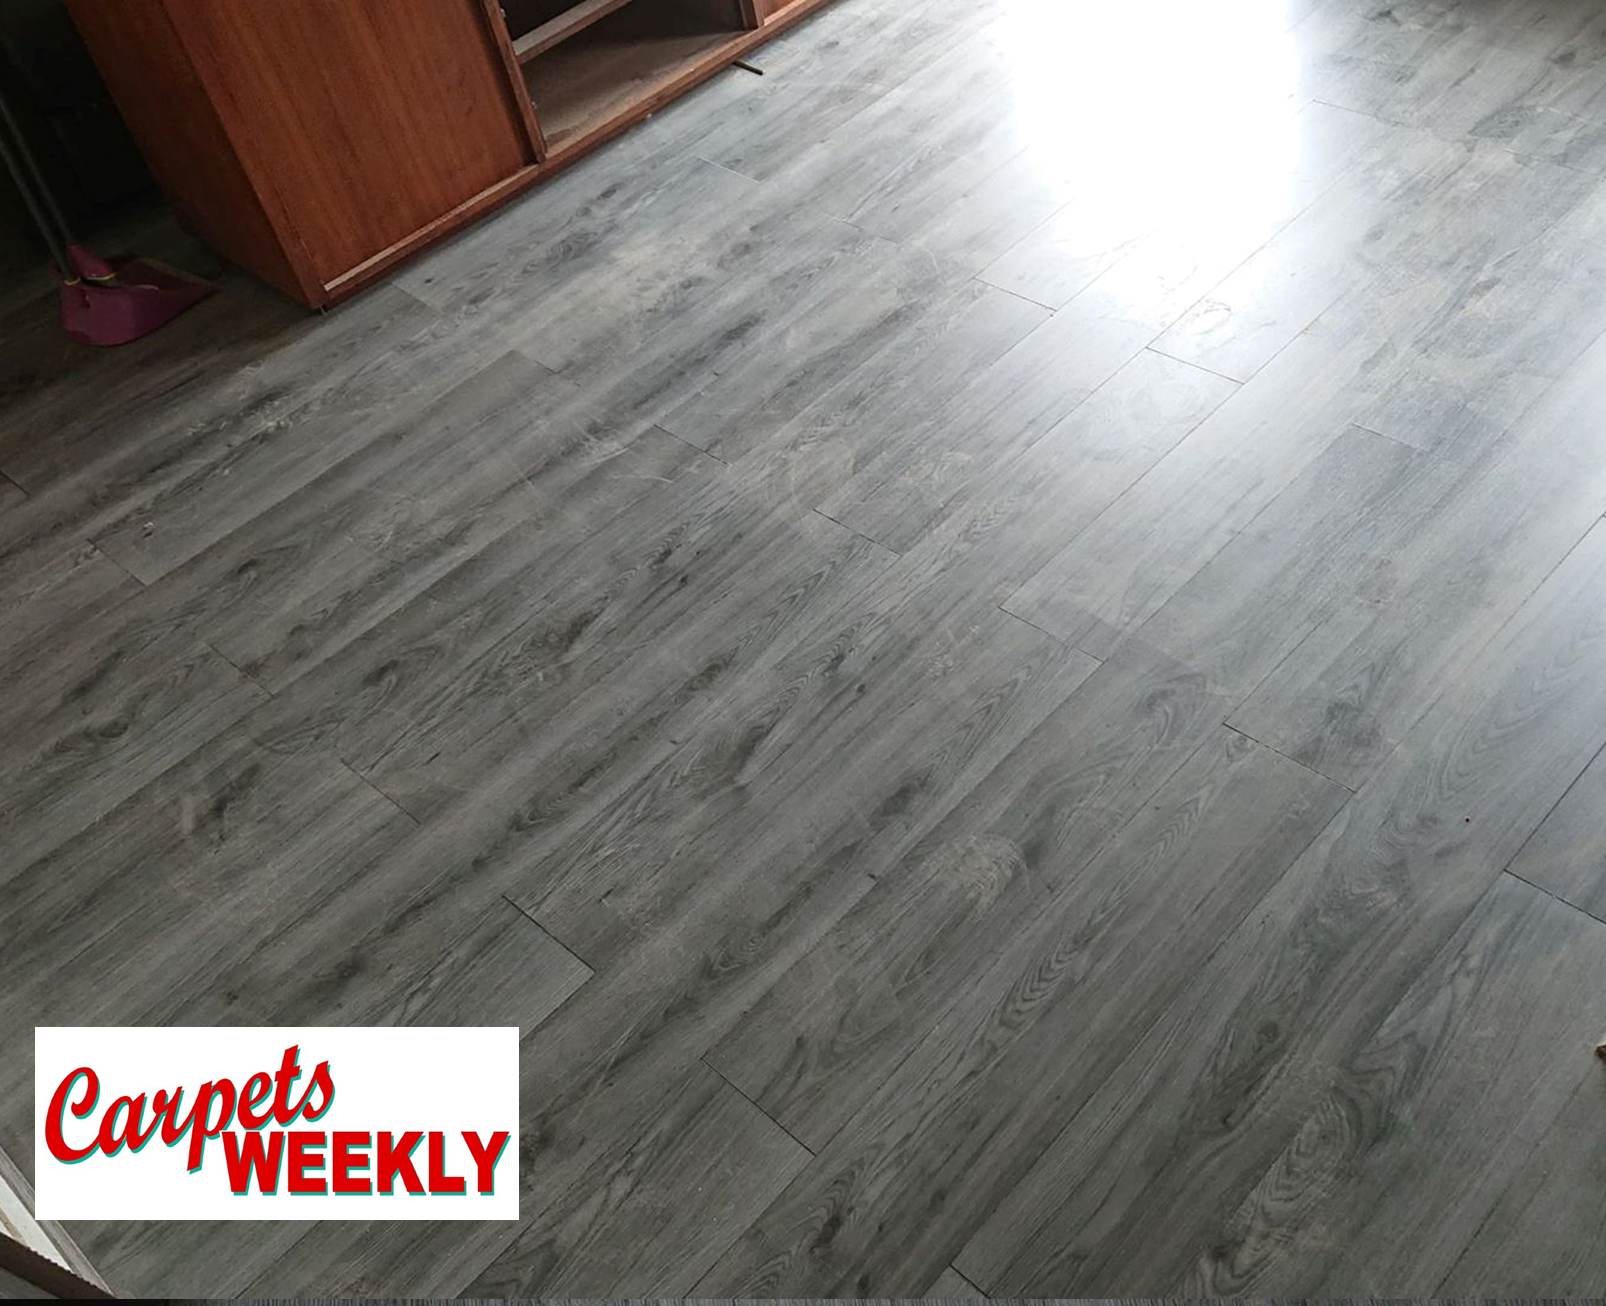 Carpets WeeklyOak Grey Laminate June 2019 4